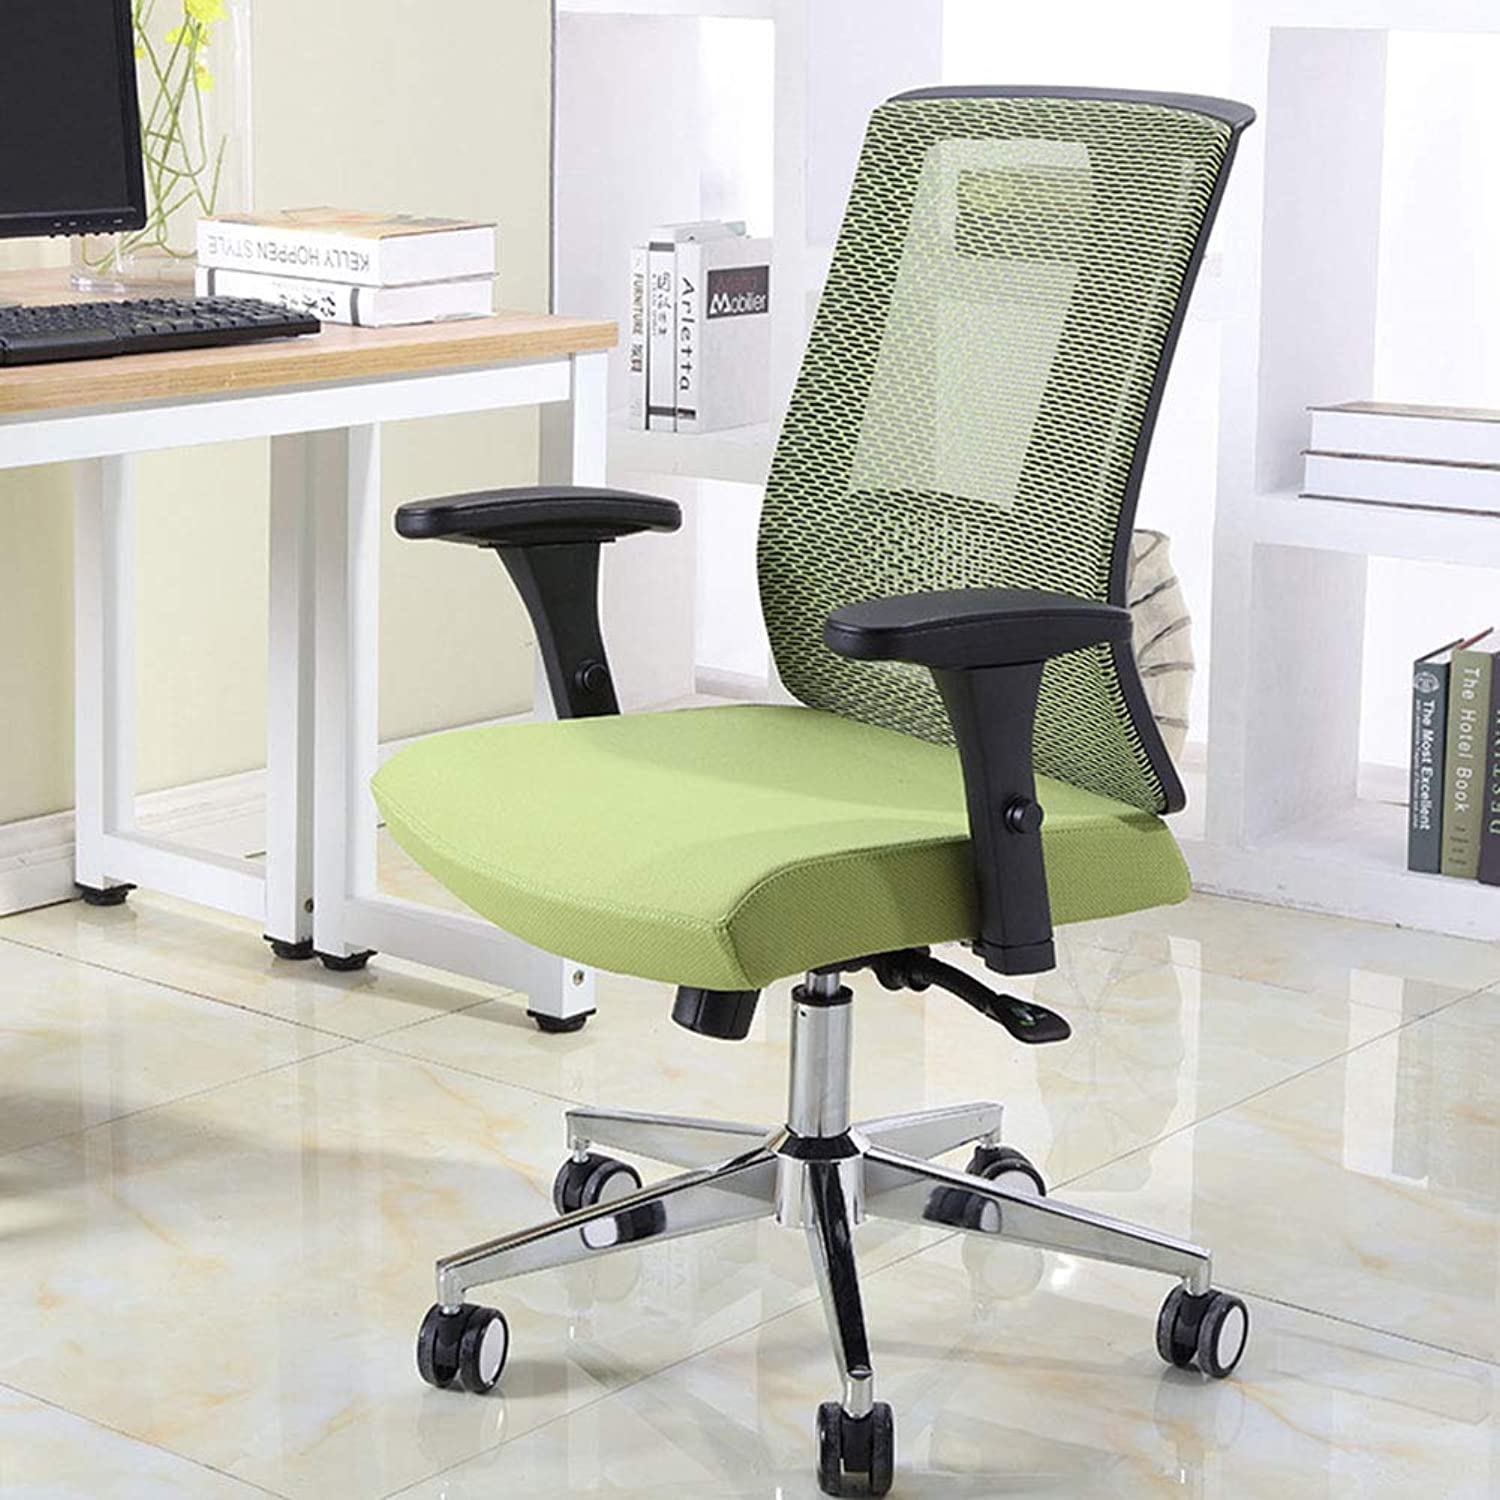 Office Swivel Chair, Home Mesh Seat Employee Armrest Chair 360 Degree Swivel Adjustable Seat Height Lever Operator Chairs Ergonomic Concept Durable and Stable